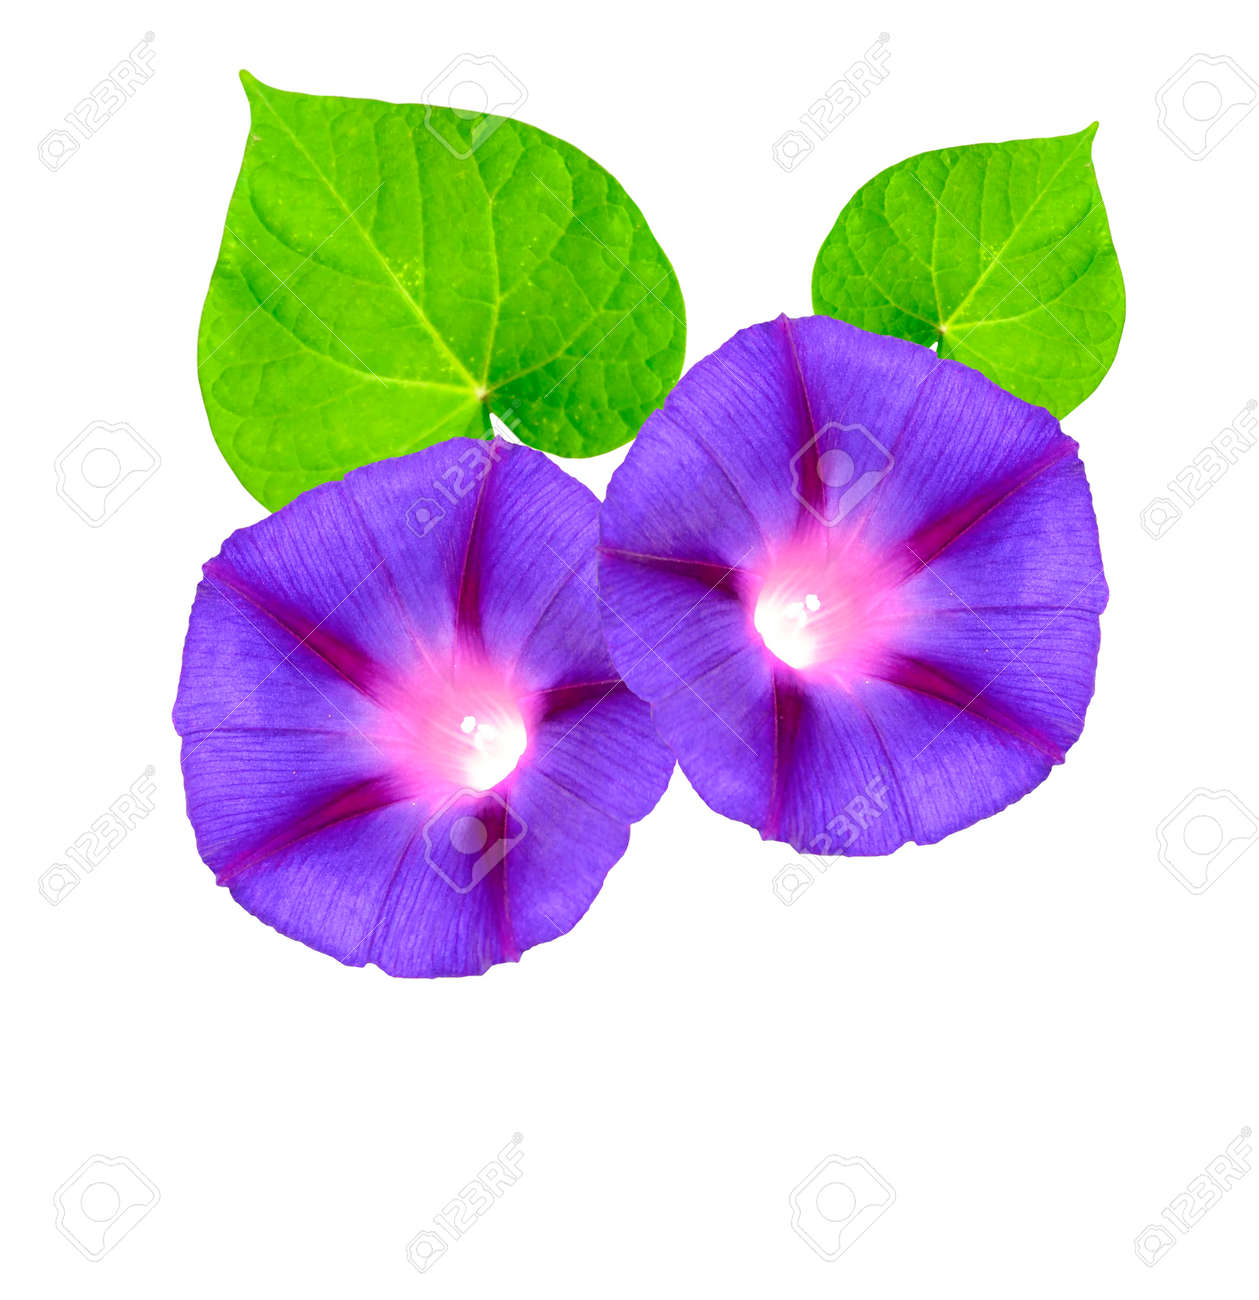 Autumn Colorful Morning Glory Flowers Isolated On White Background